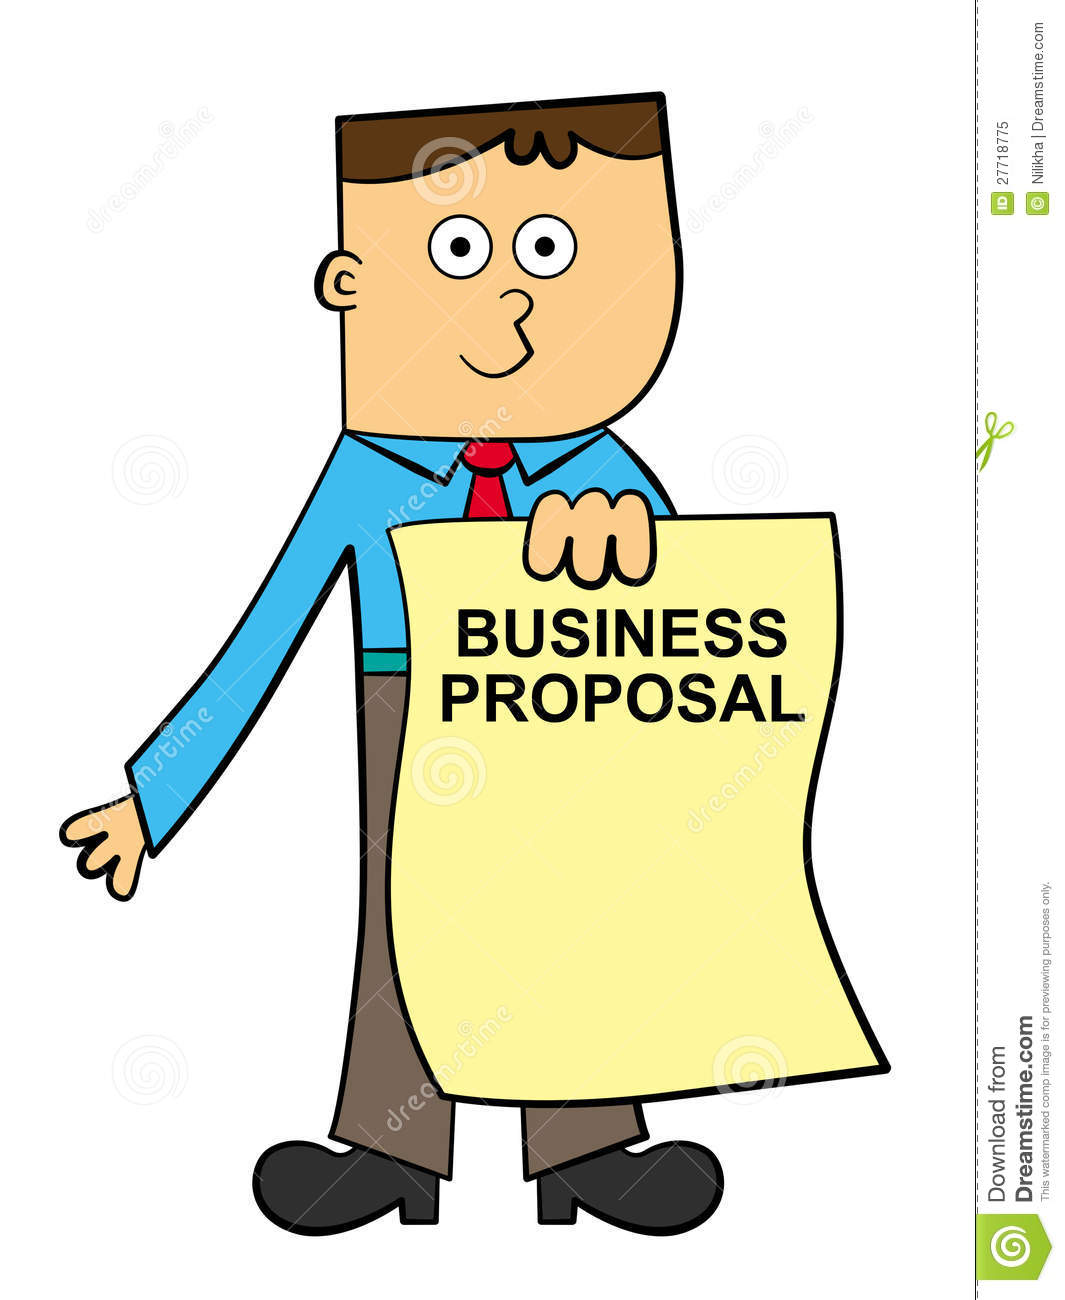 a business proposal for you stock illustration illustration of rh dreamstime com engagement proposal clipart marriage proposal clipart